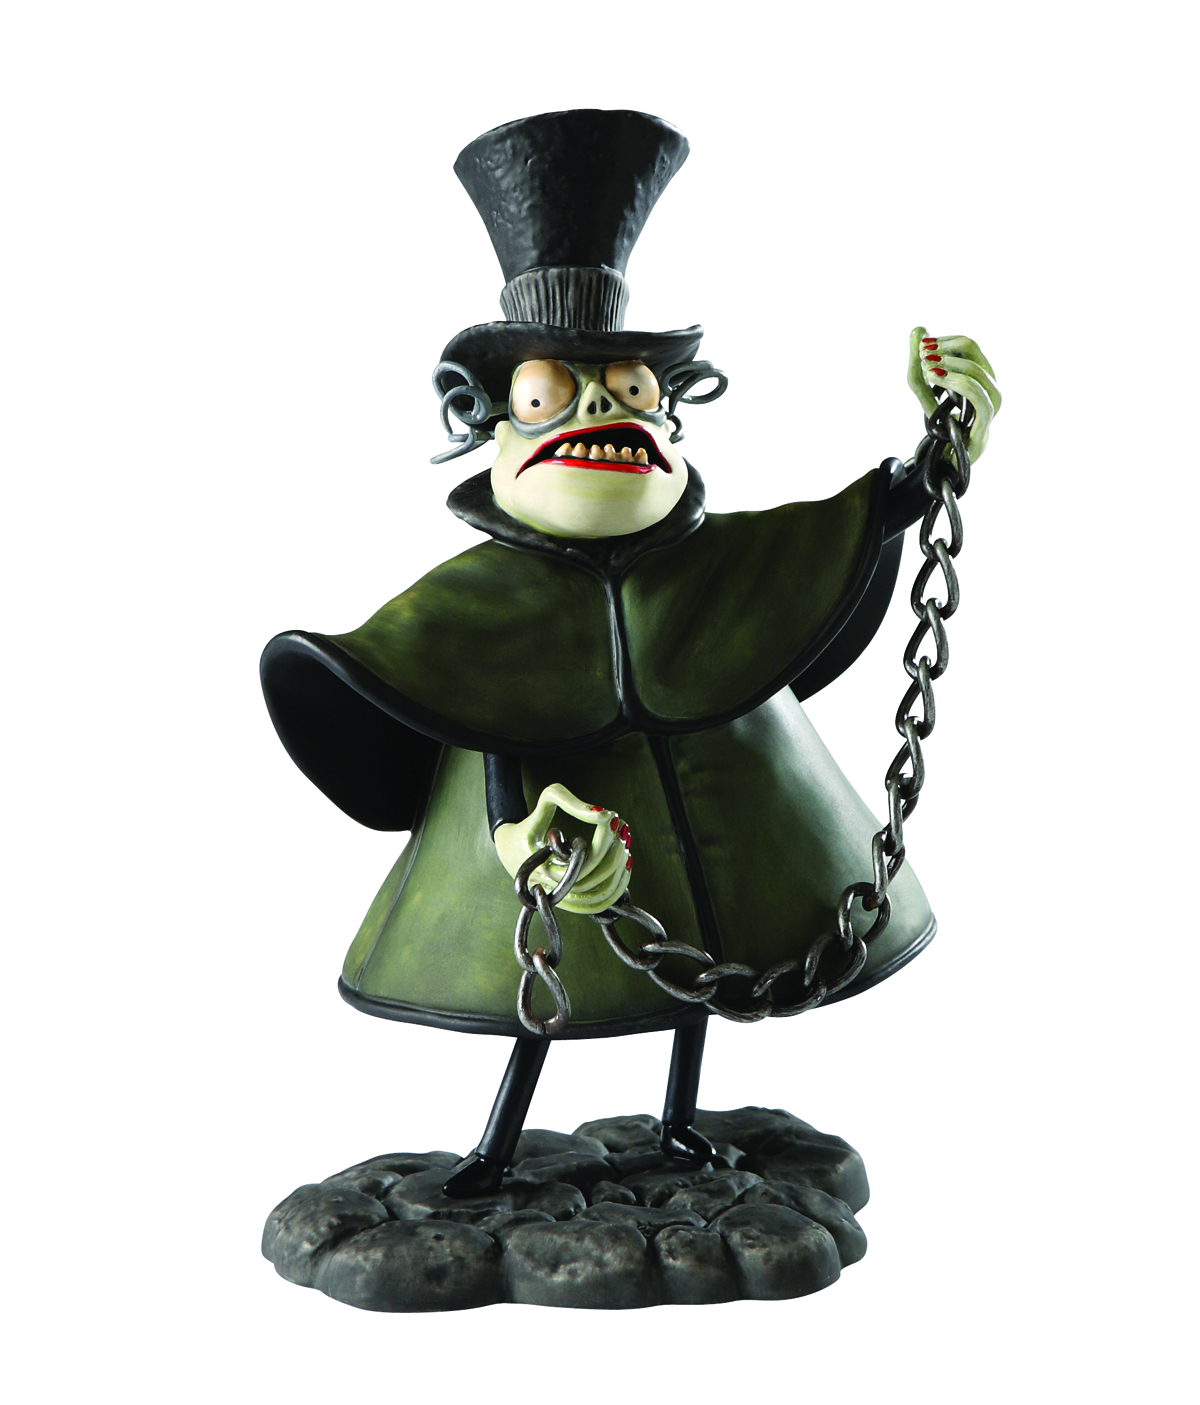 Jan121823 Wdcc Nbx Macabre Madman Mr Hyde Statue Previews World Jack skellington, king of halloweentown, discovers christmas town, but doesn't quite understand the concept. wdcc nbx macabre madman mr hyde statue